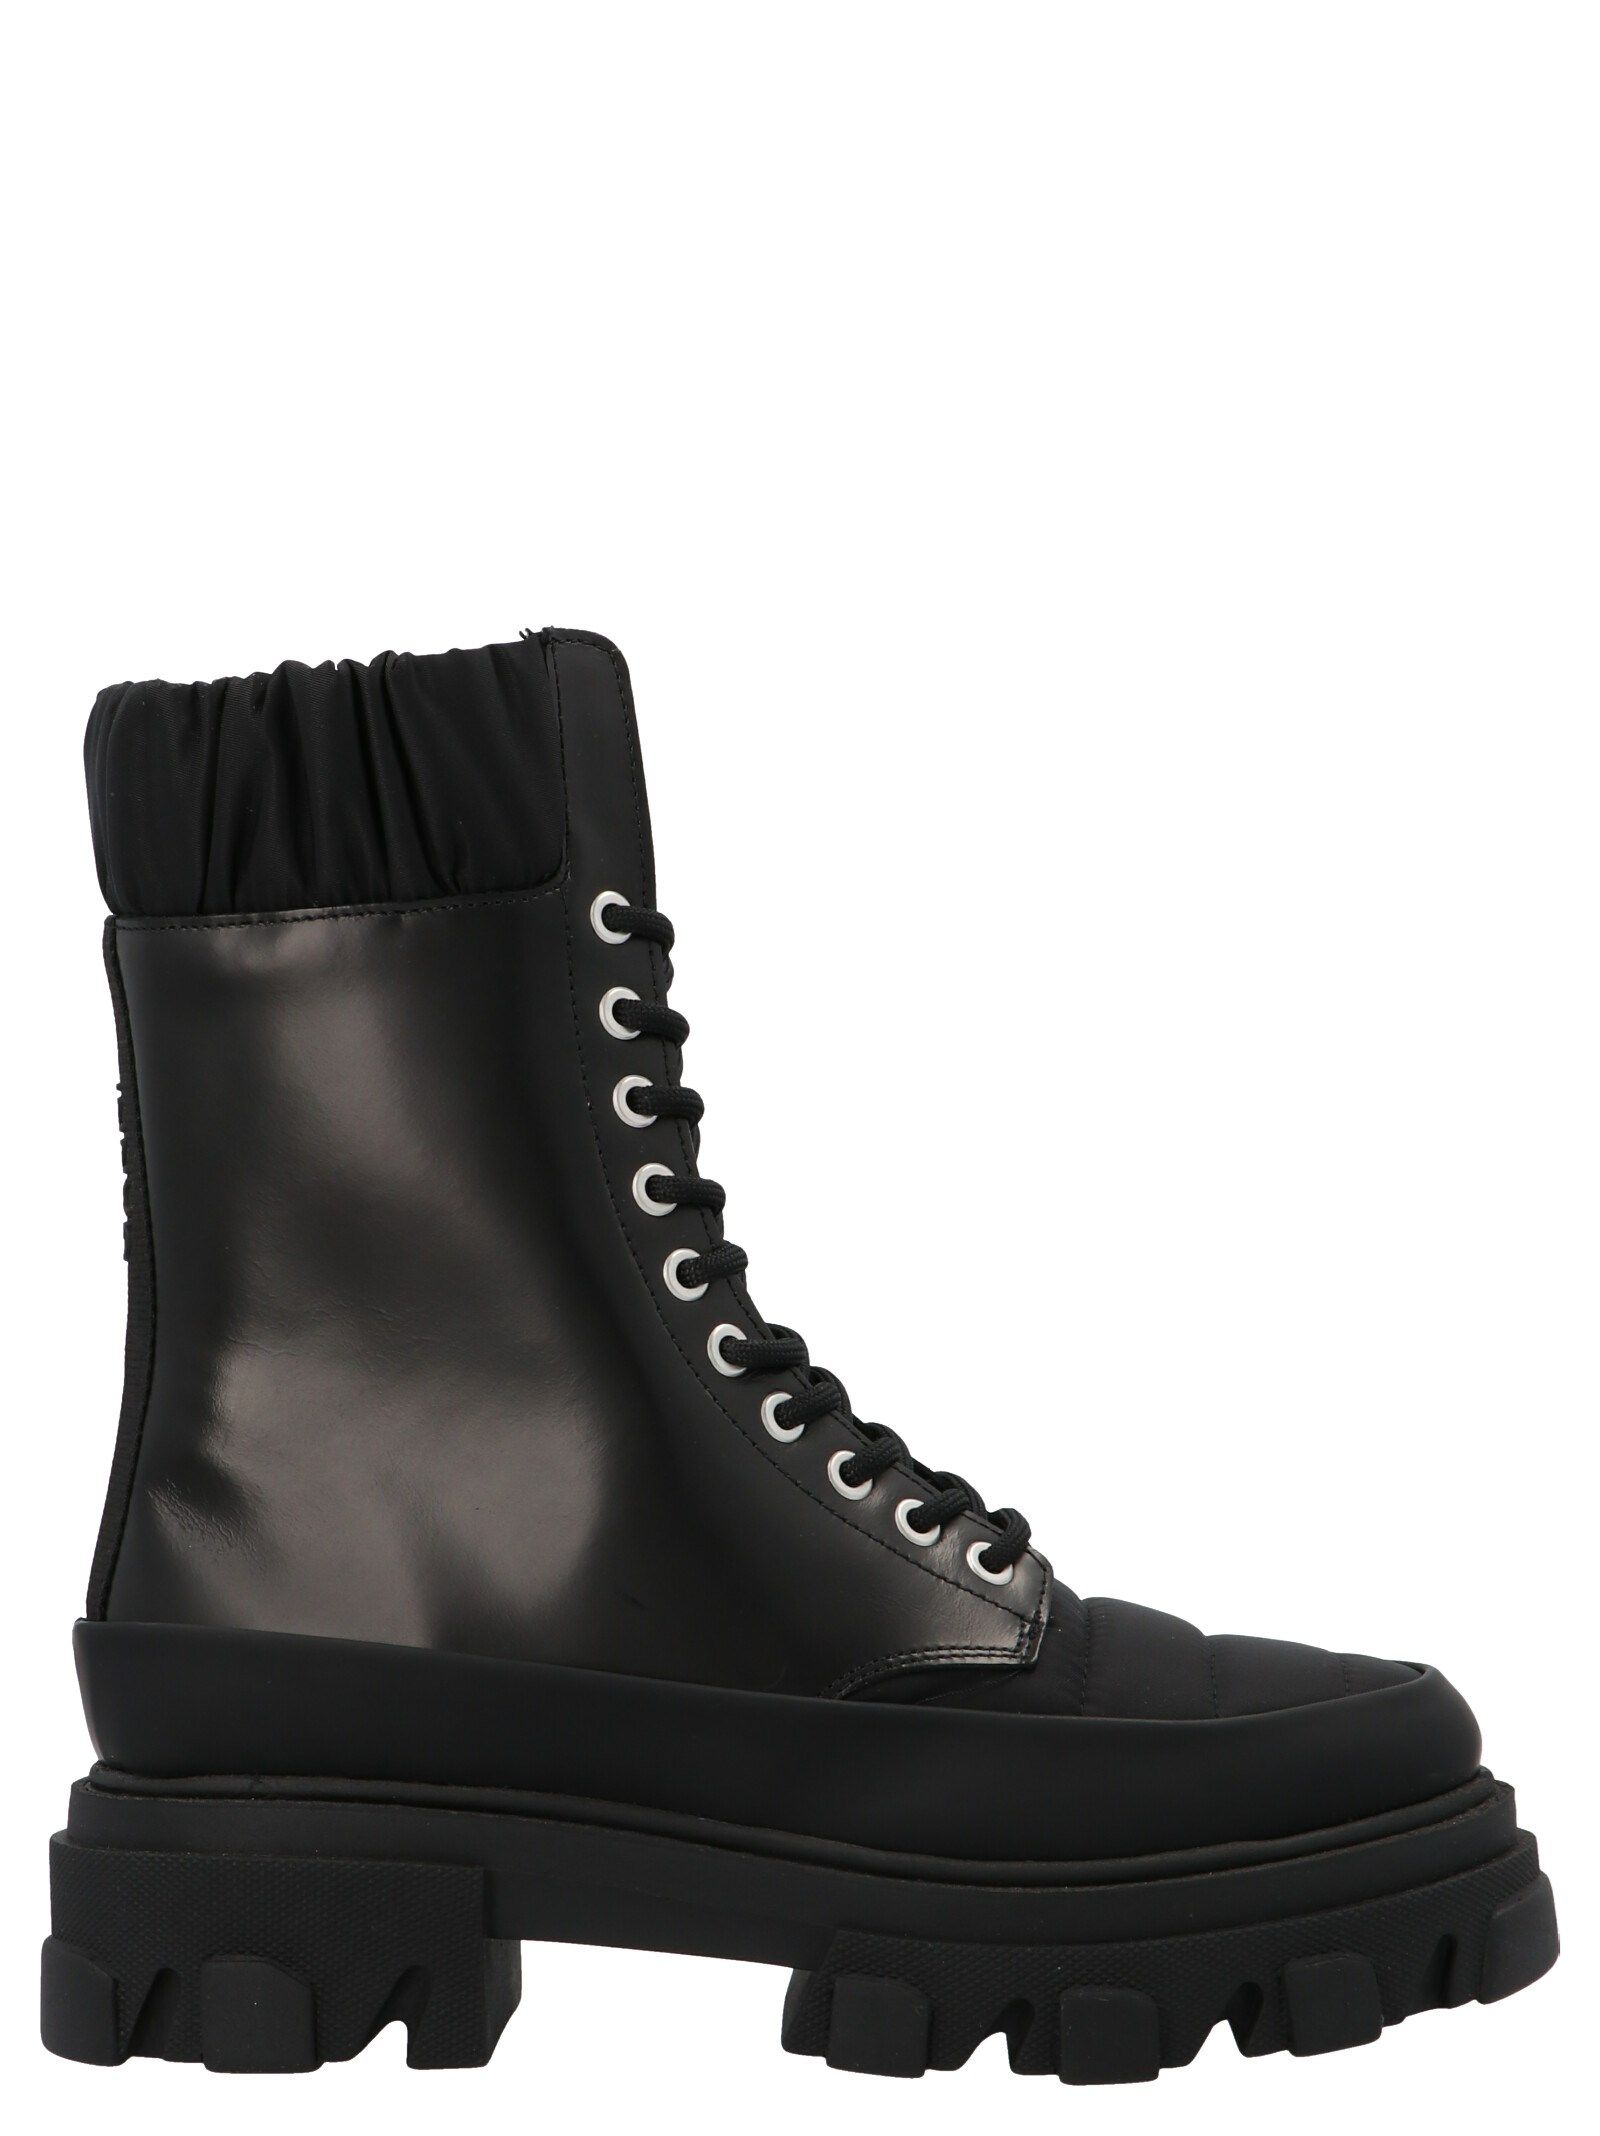 Ganni GANNI WOMEN'S S1409099 BLACK OTHER MATERIALS ANKLE BOOTS